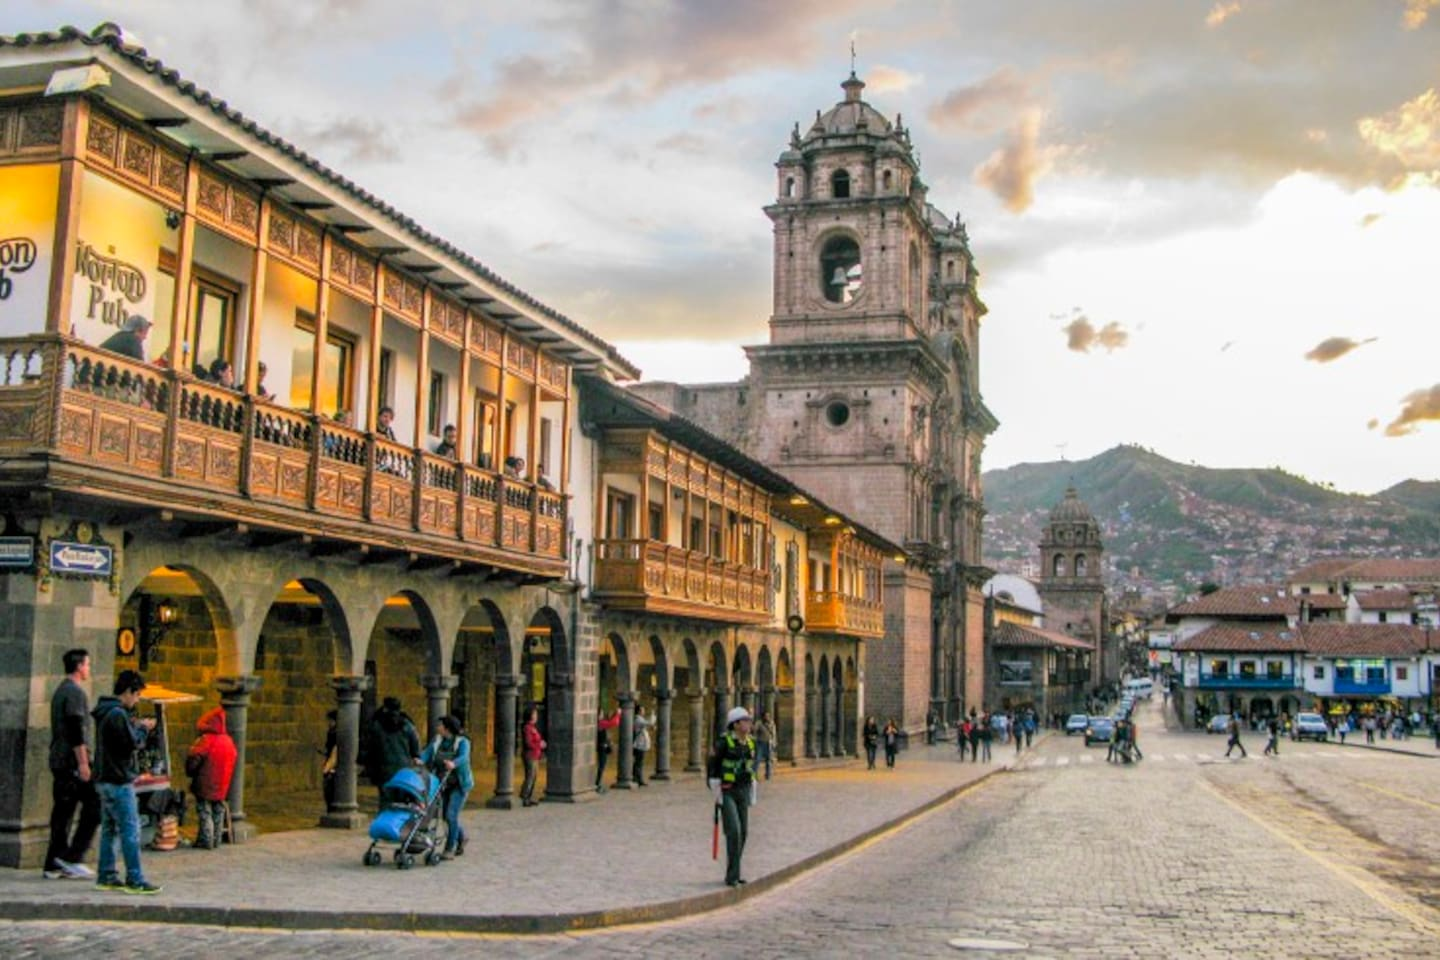 Peruvians love their meat, but there are so many vegan + vegetarian options in Cusco. Let us recommend our favorite spot in the Plaza de Armas!